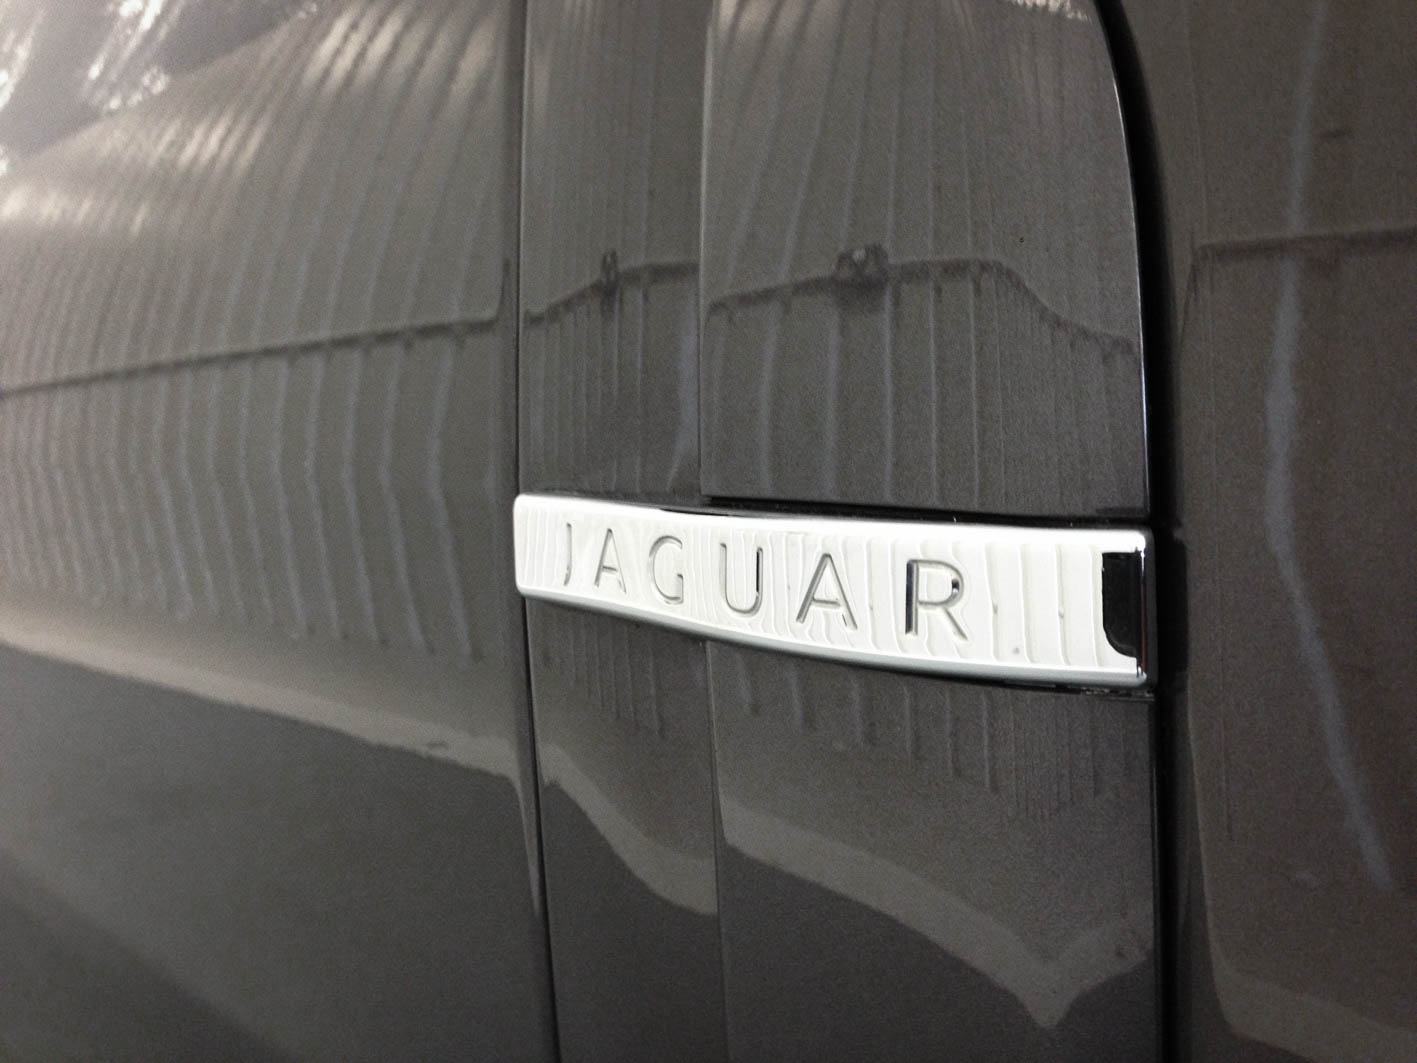 Jaguar XF – Badge detail